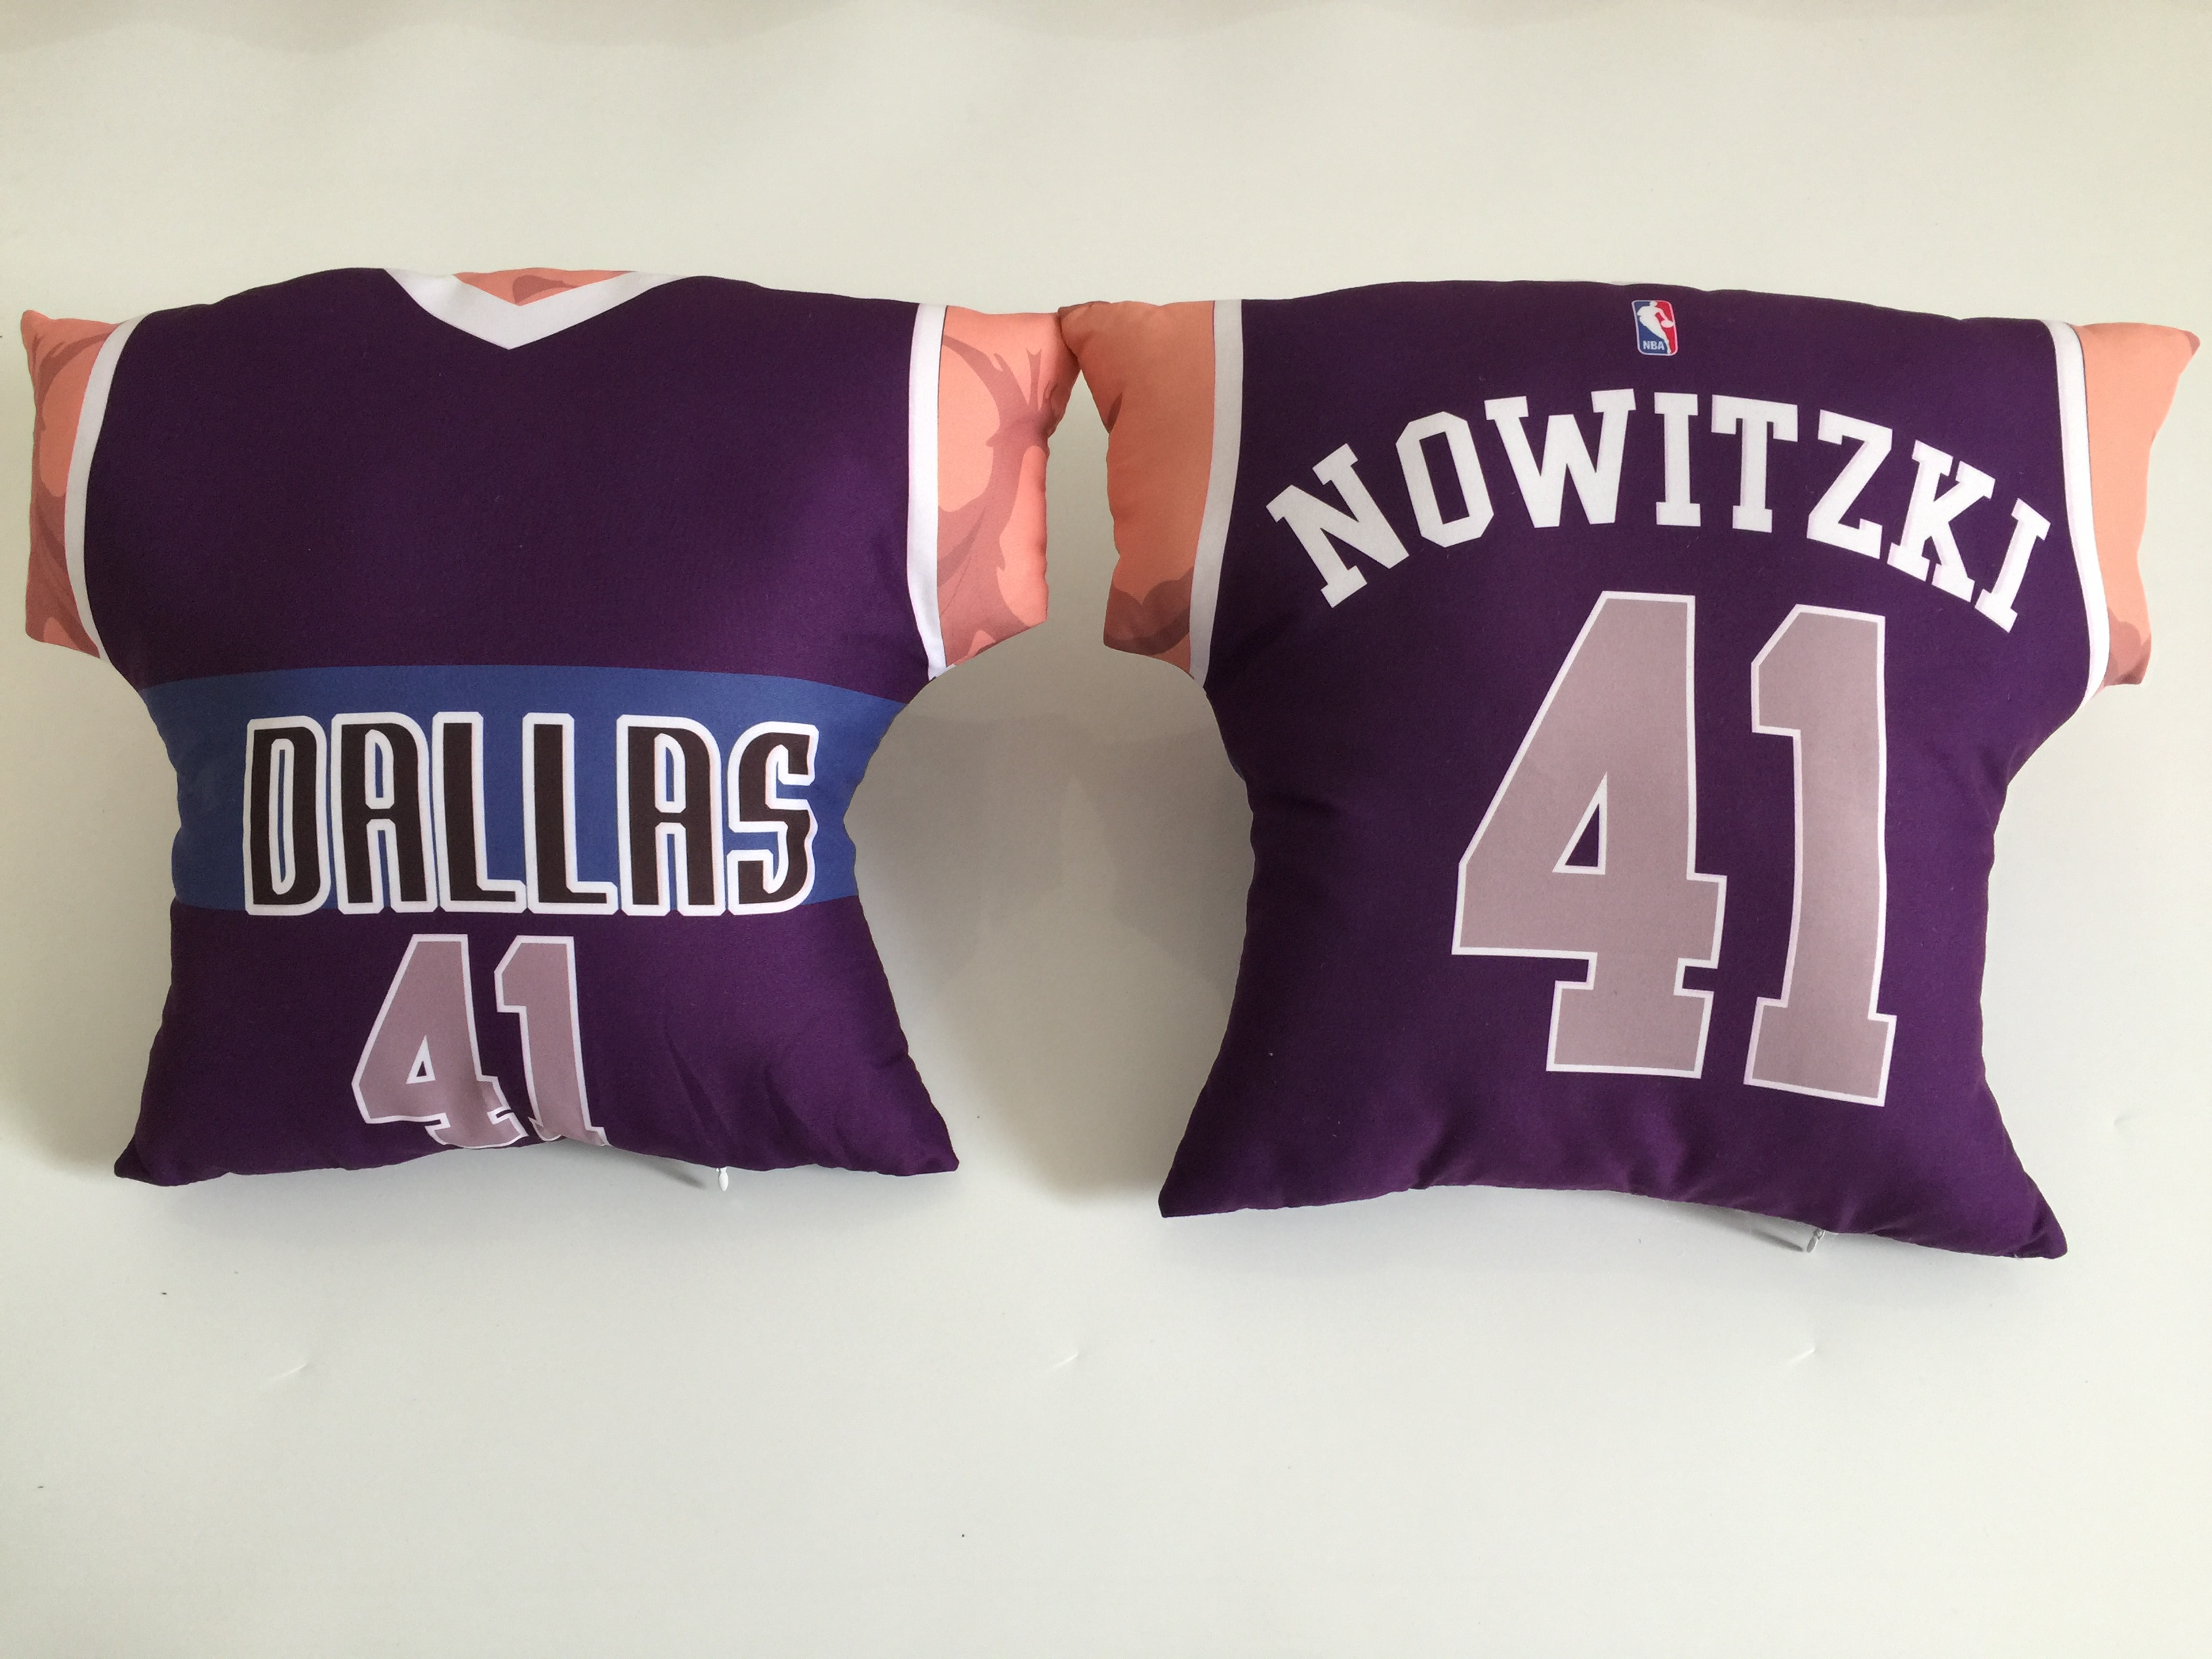 Dallas Mavericks 41 Dirk Nowitzki Purple NBA Pillow